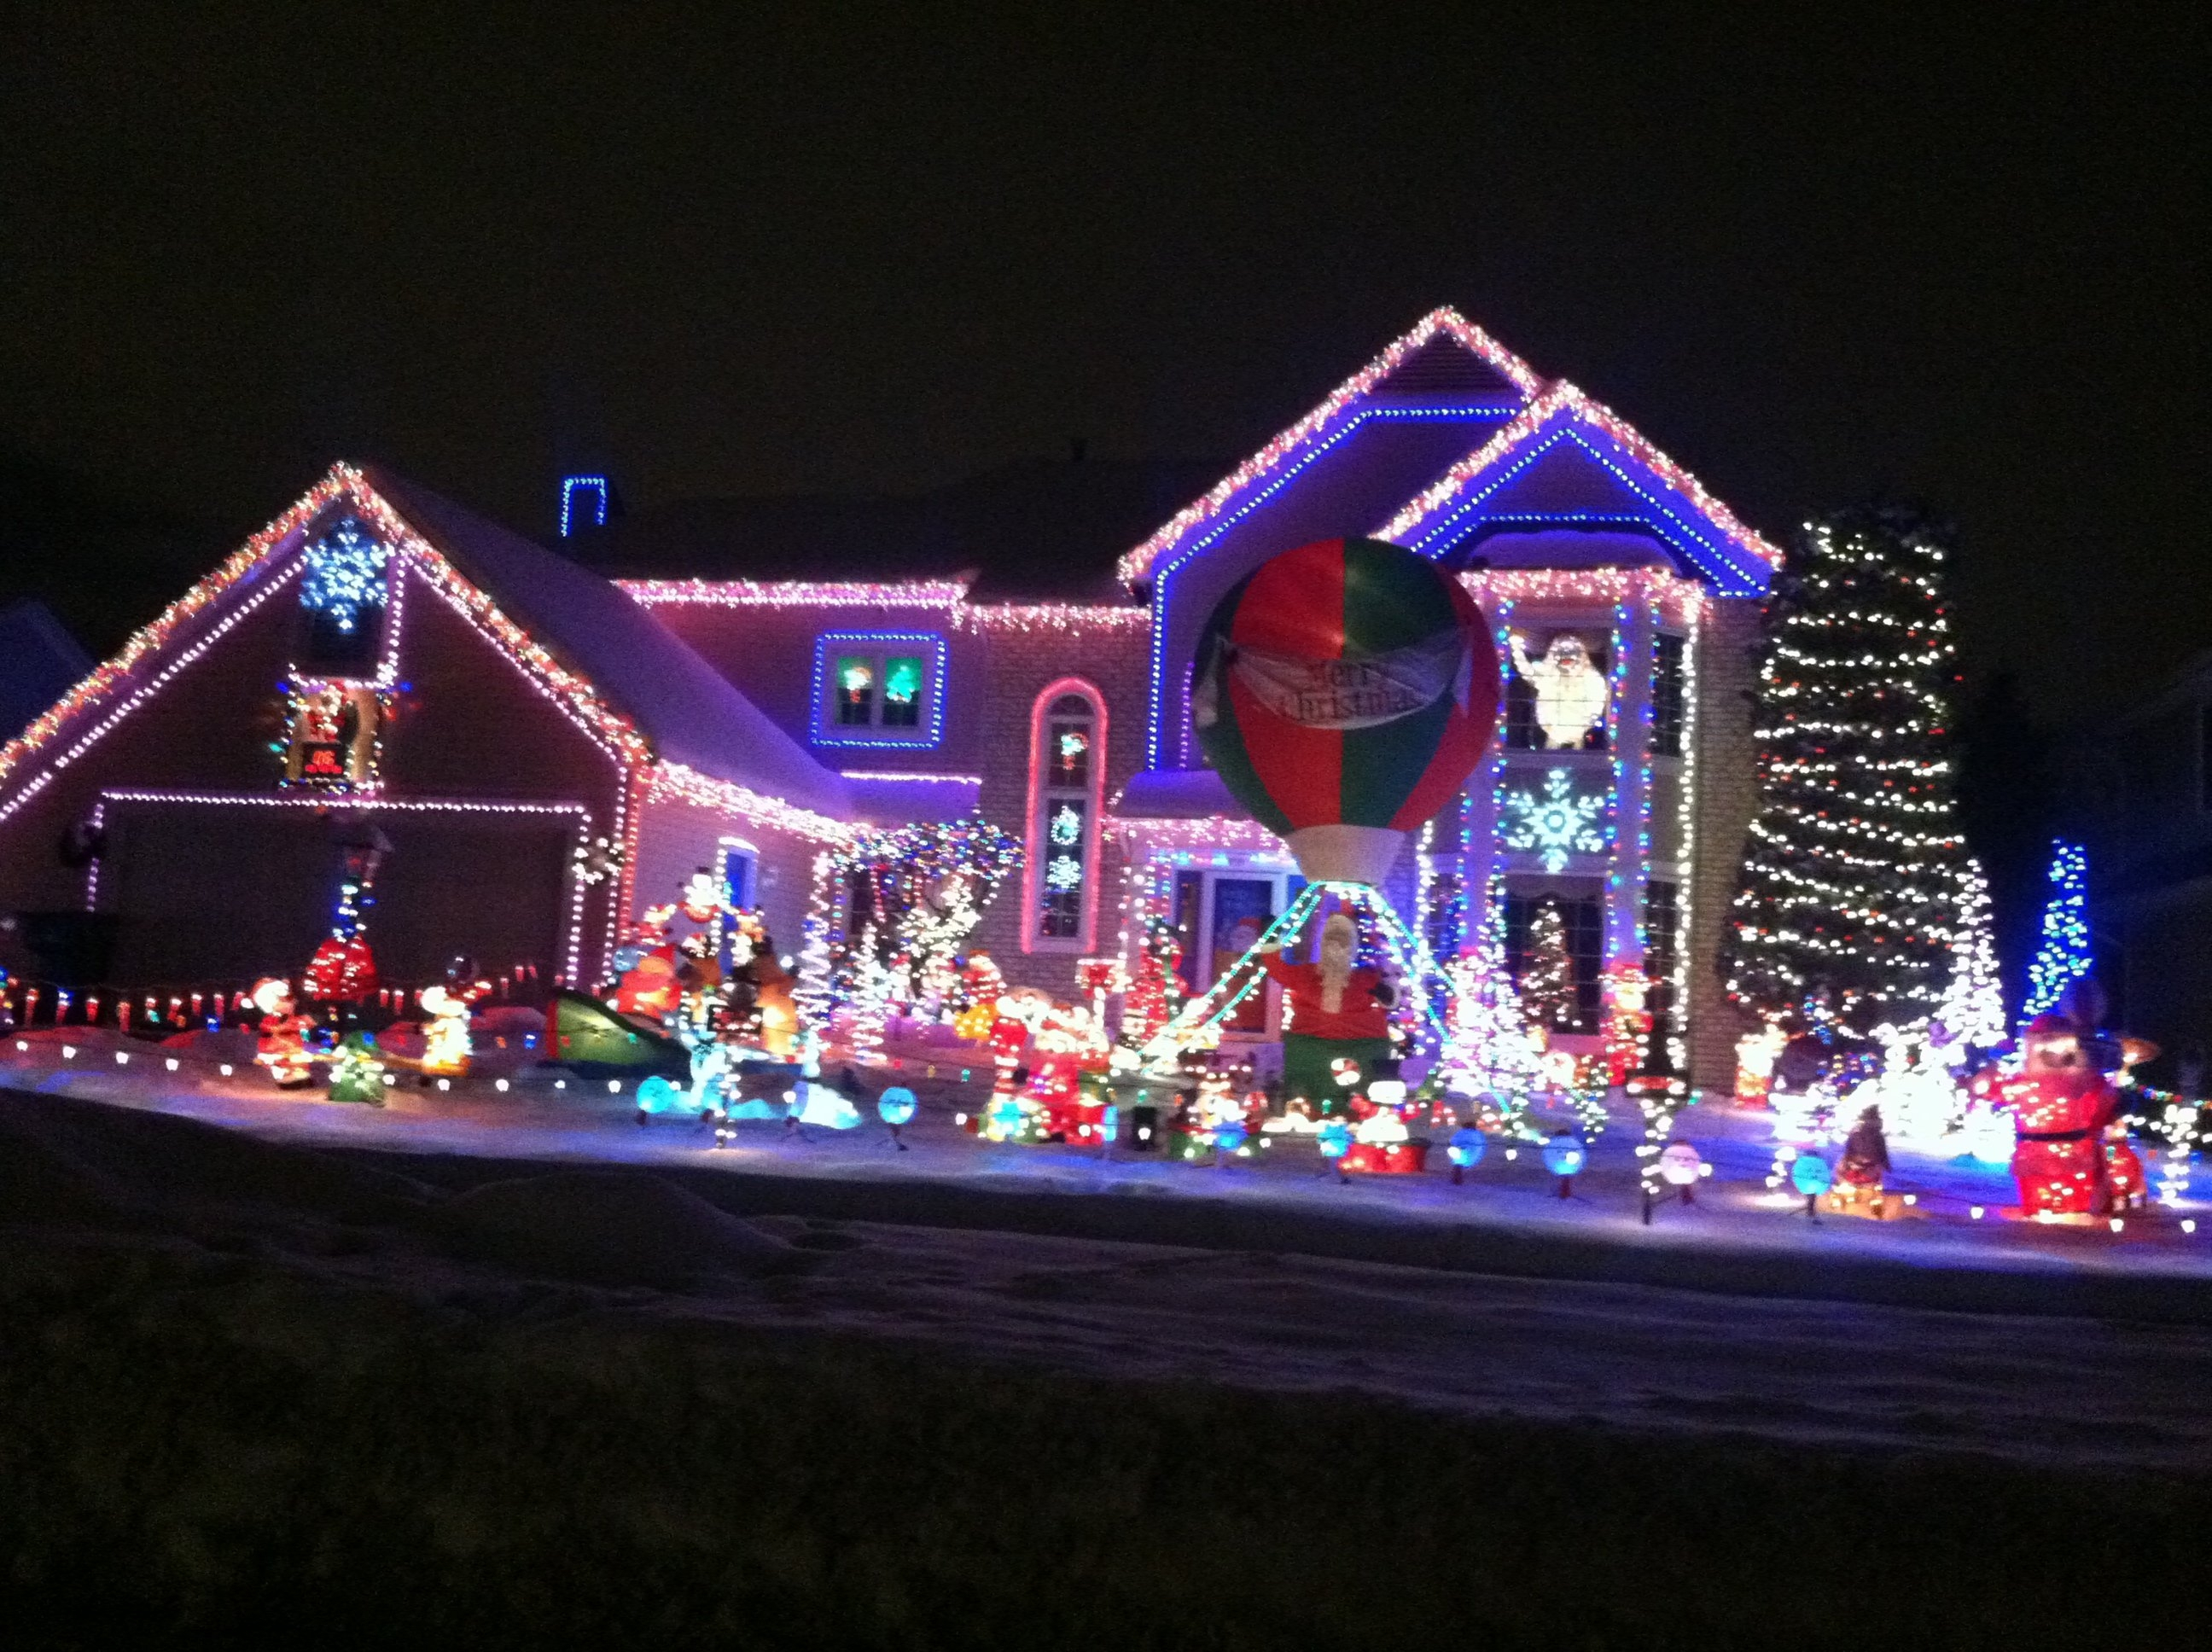 Local Christmas Lights Displays Christmas Site 2018 with regard to measurements 2592 X 1936